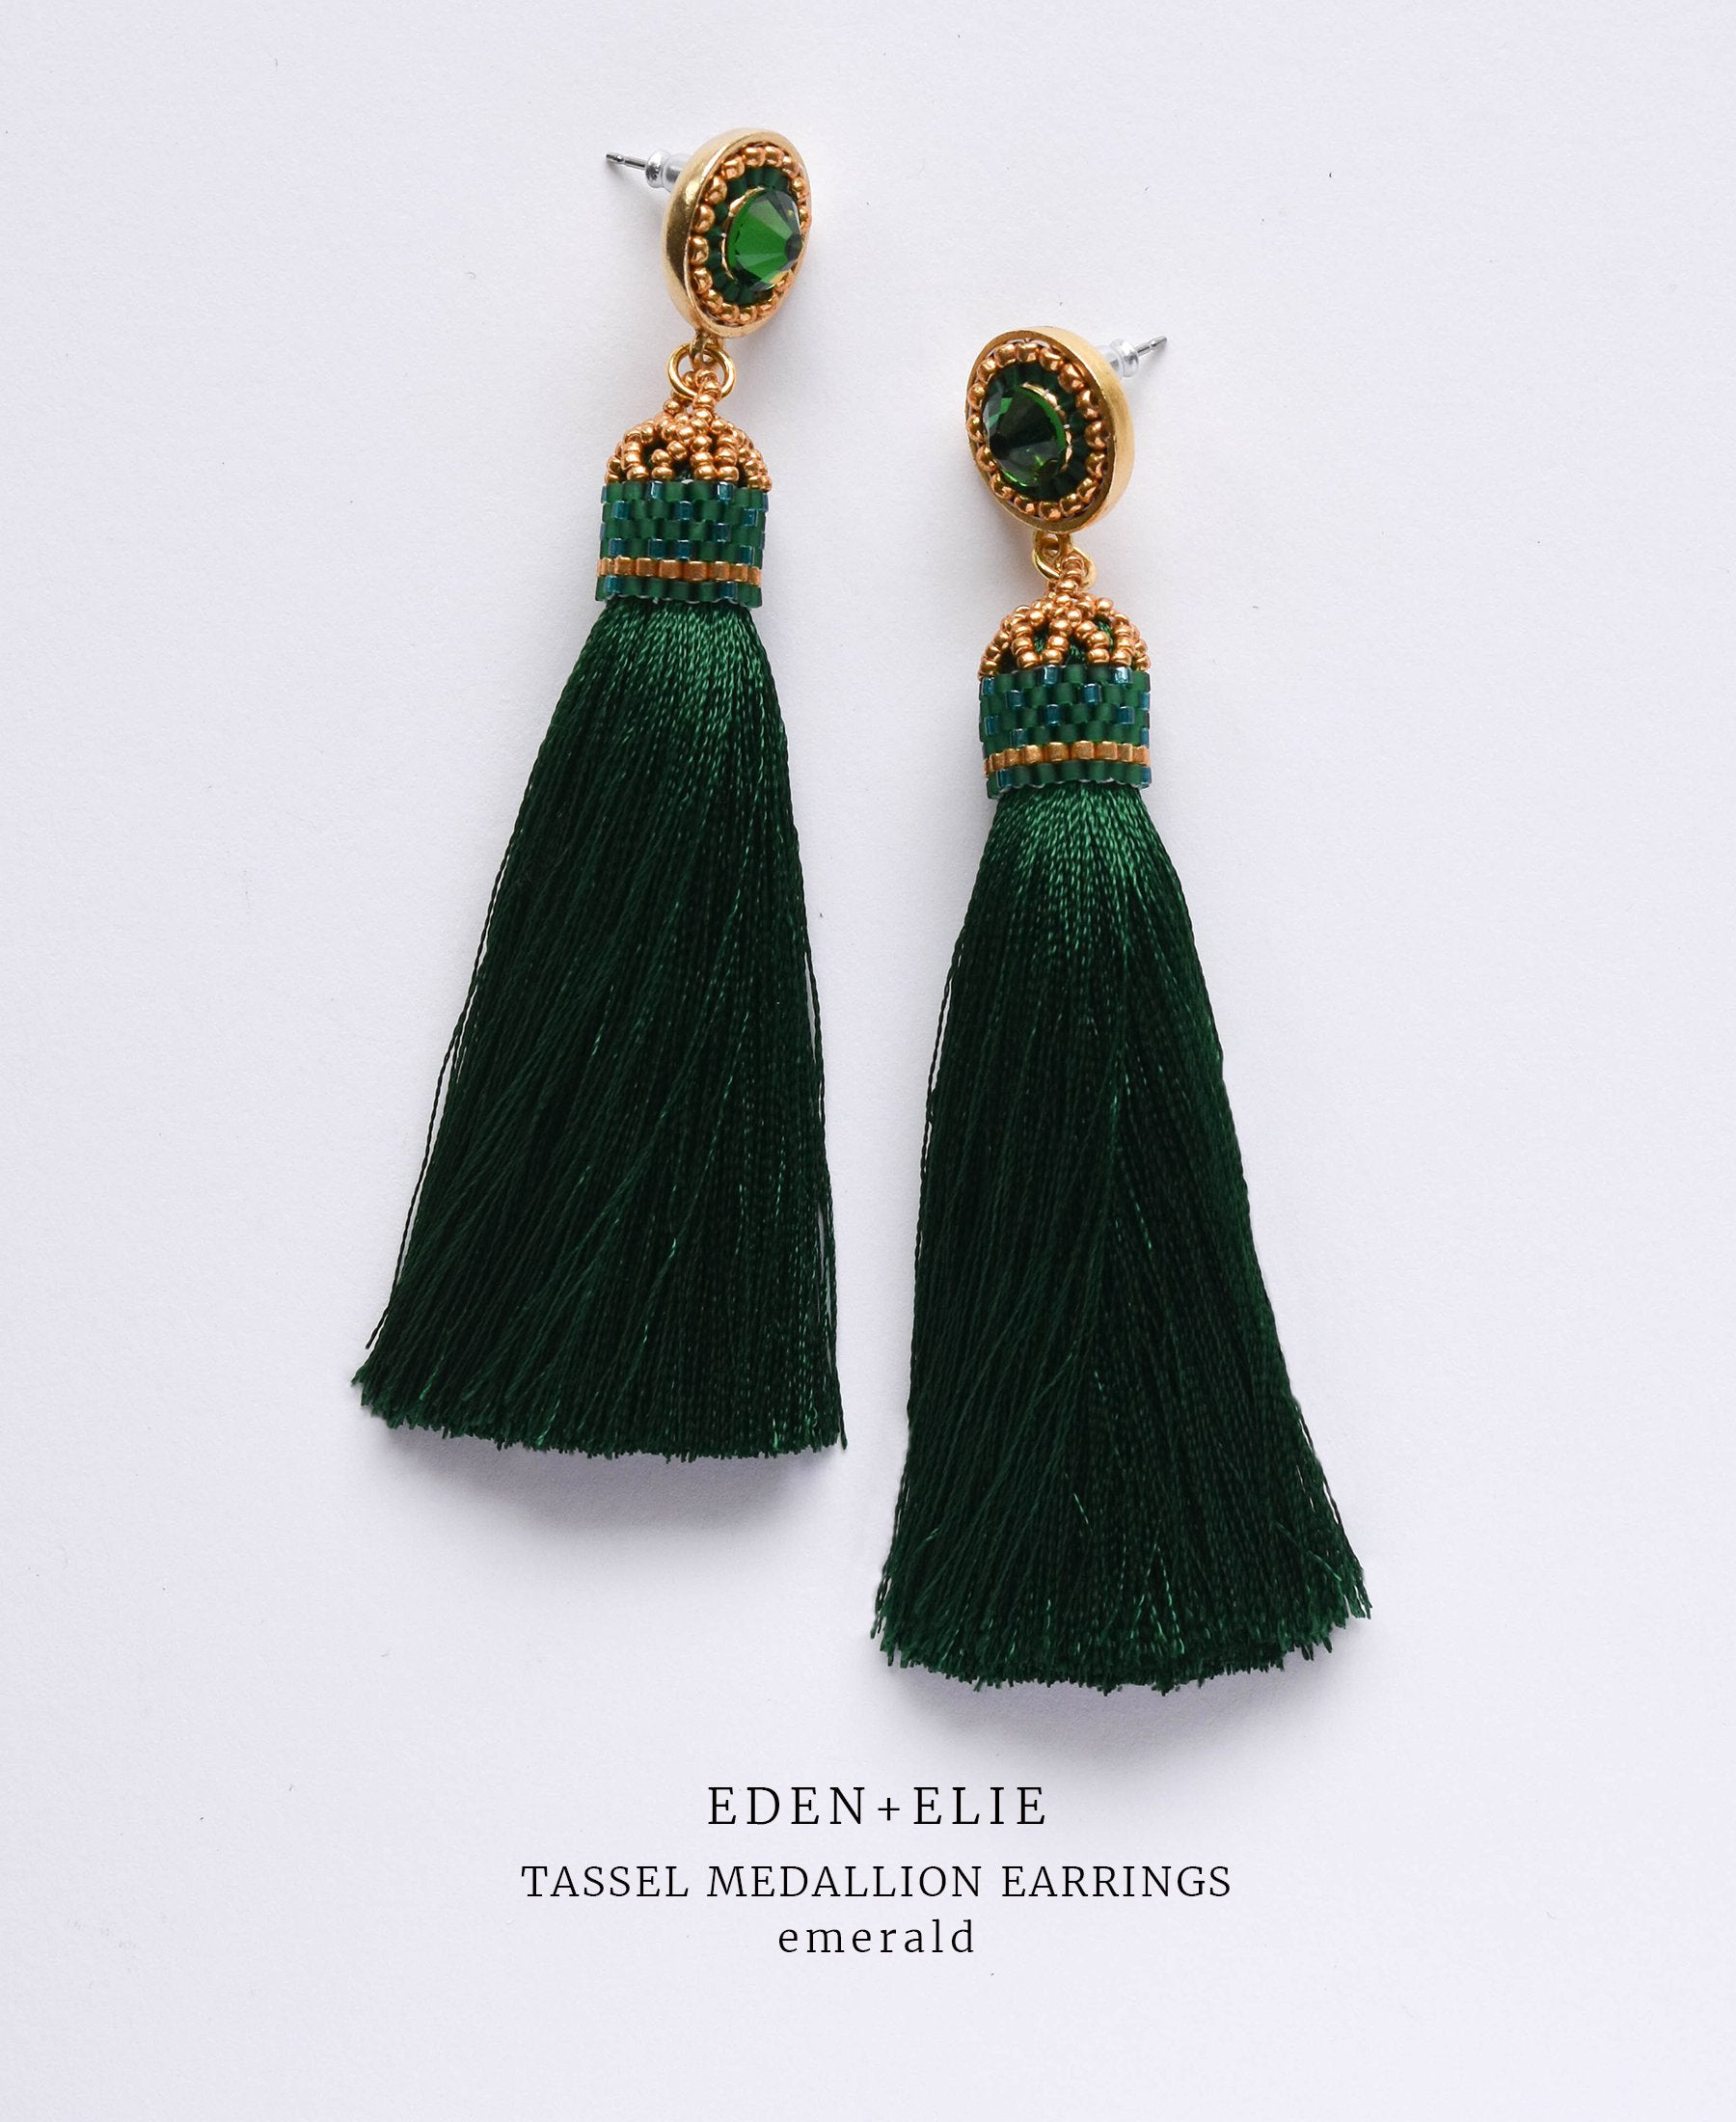 EDEN + ELIE silk tassel statement earrings - emerald green